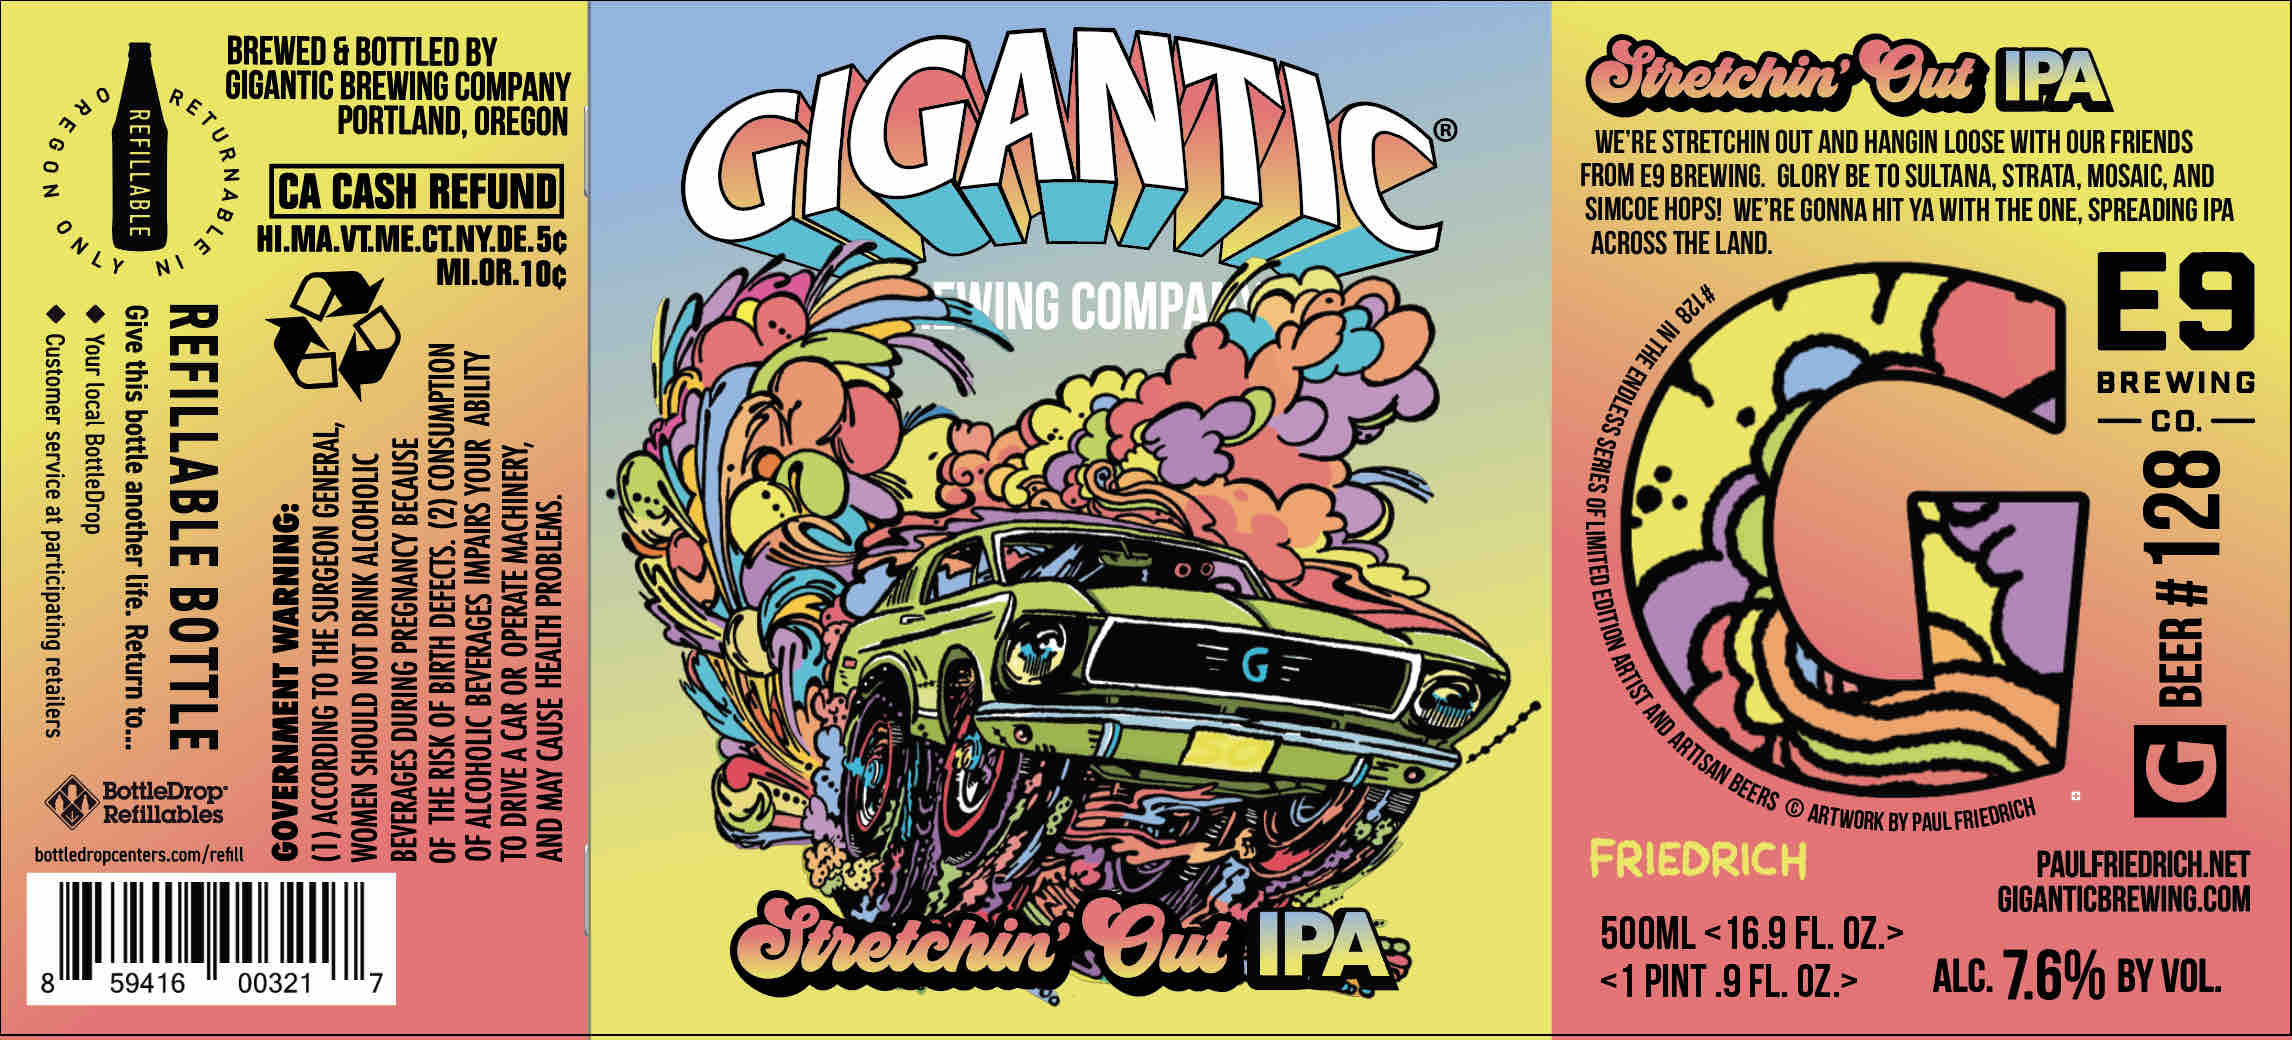 Gigantic Brewing & E9 Brewing Stretchin' Out IPA label created by Paul Friedrich